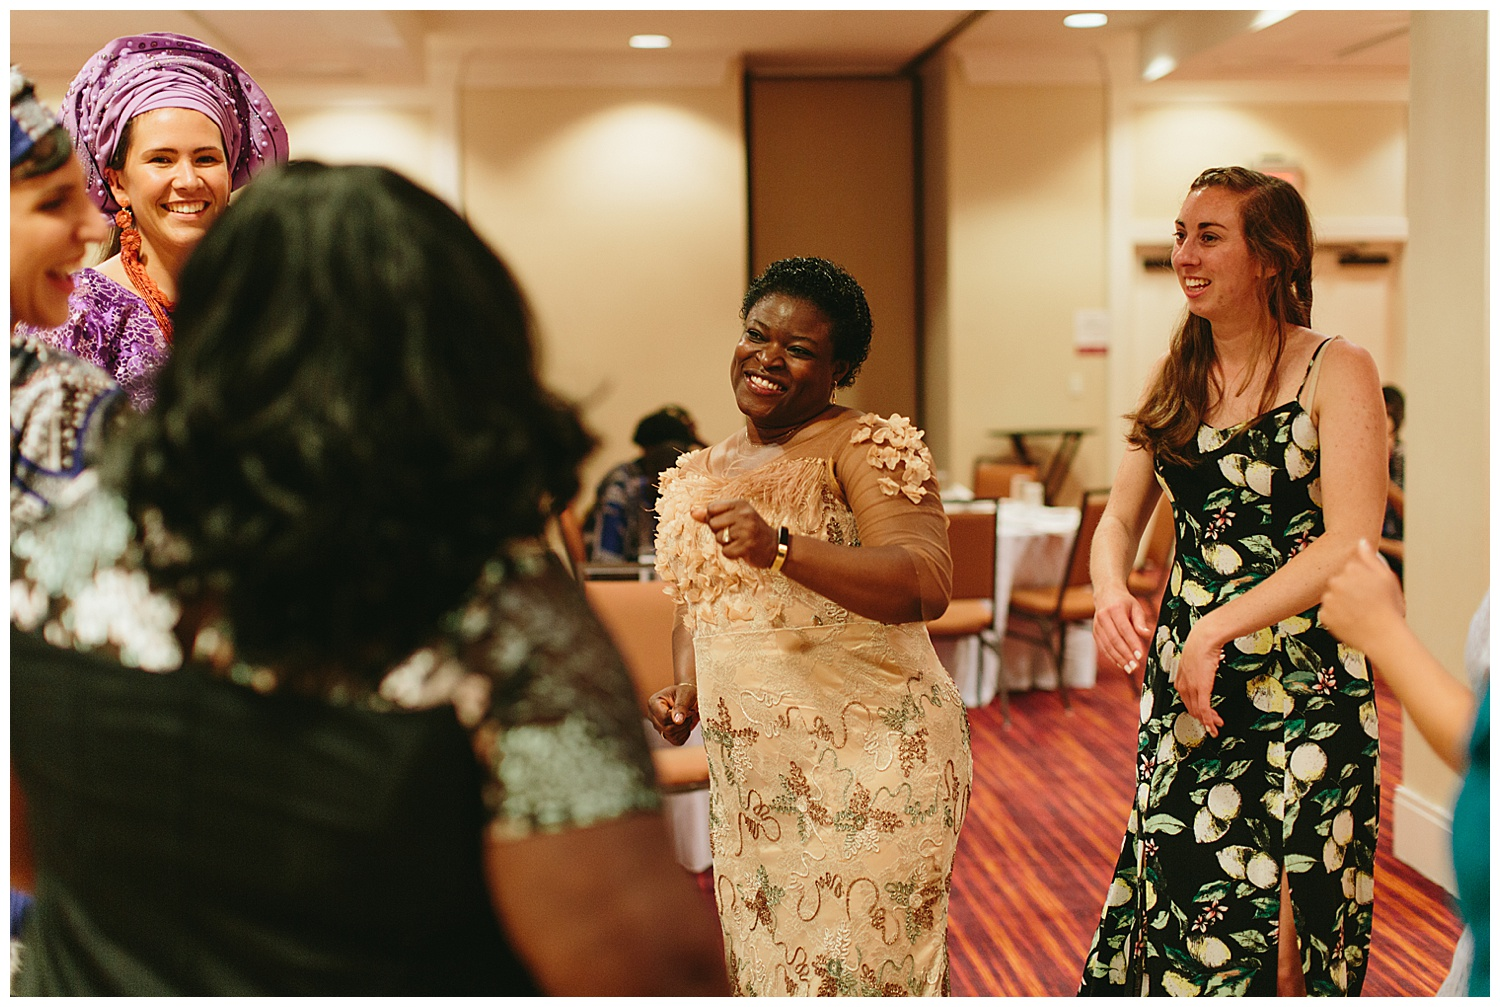 trent.and.kendra.photography.nigerian.wedding.louisville-45.jpg